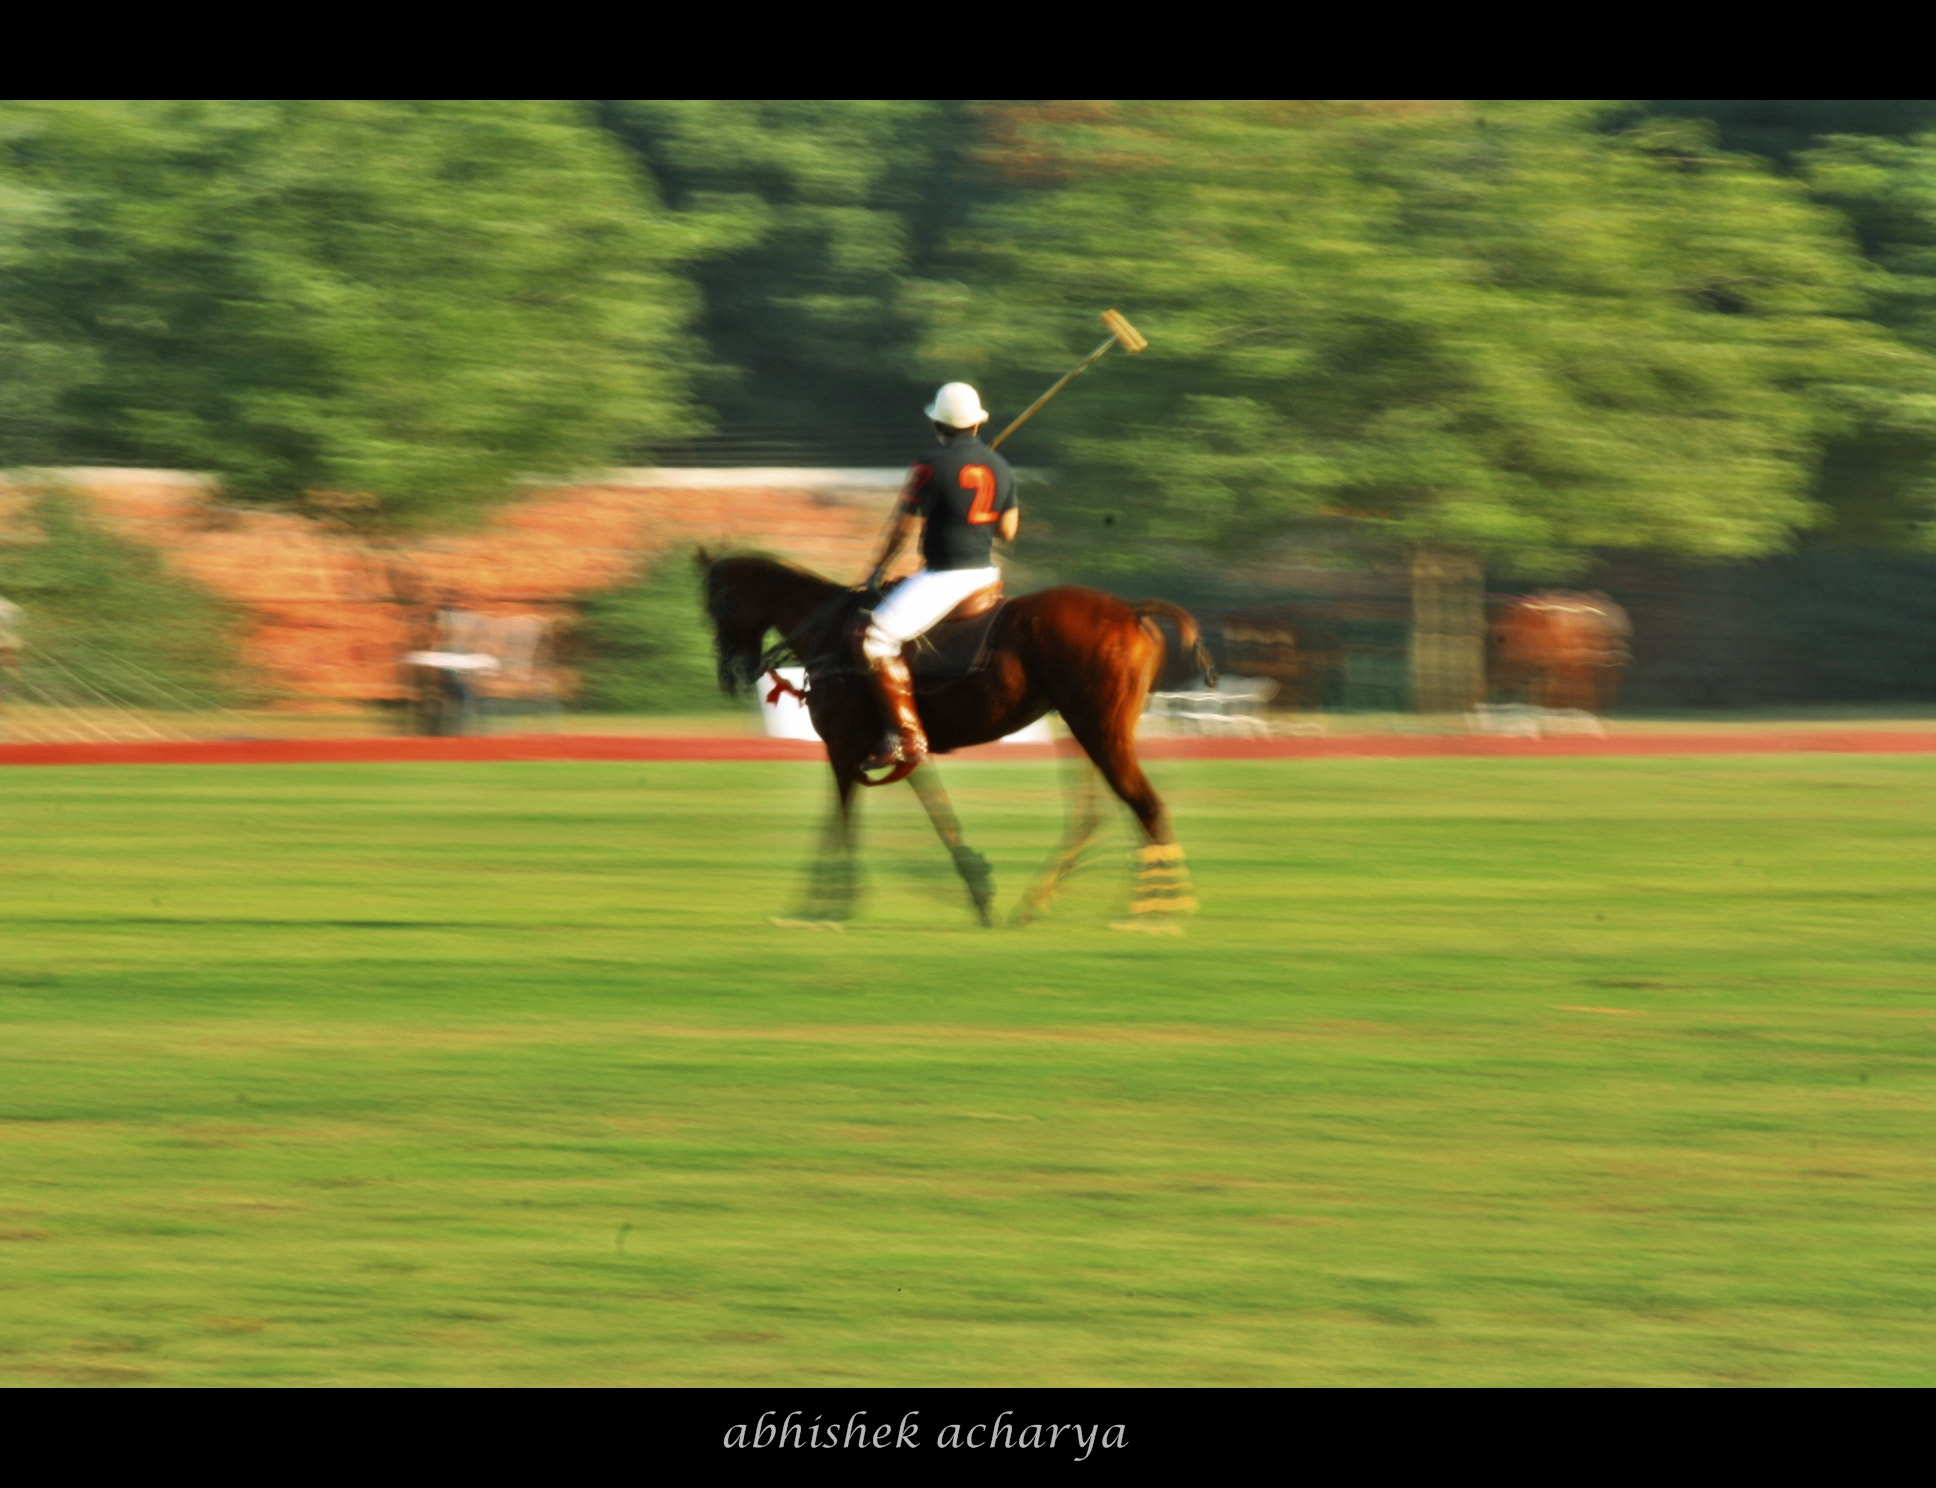 Photograph polo player  by abhishek Acharya on 500px